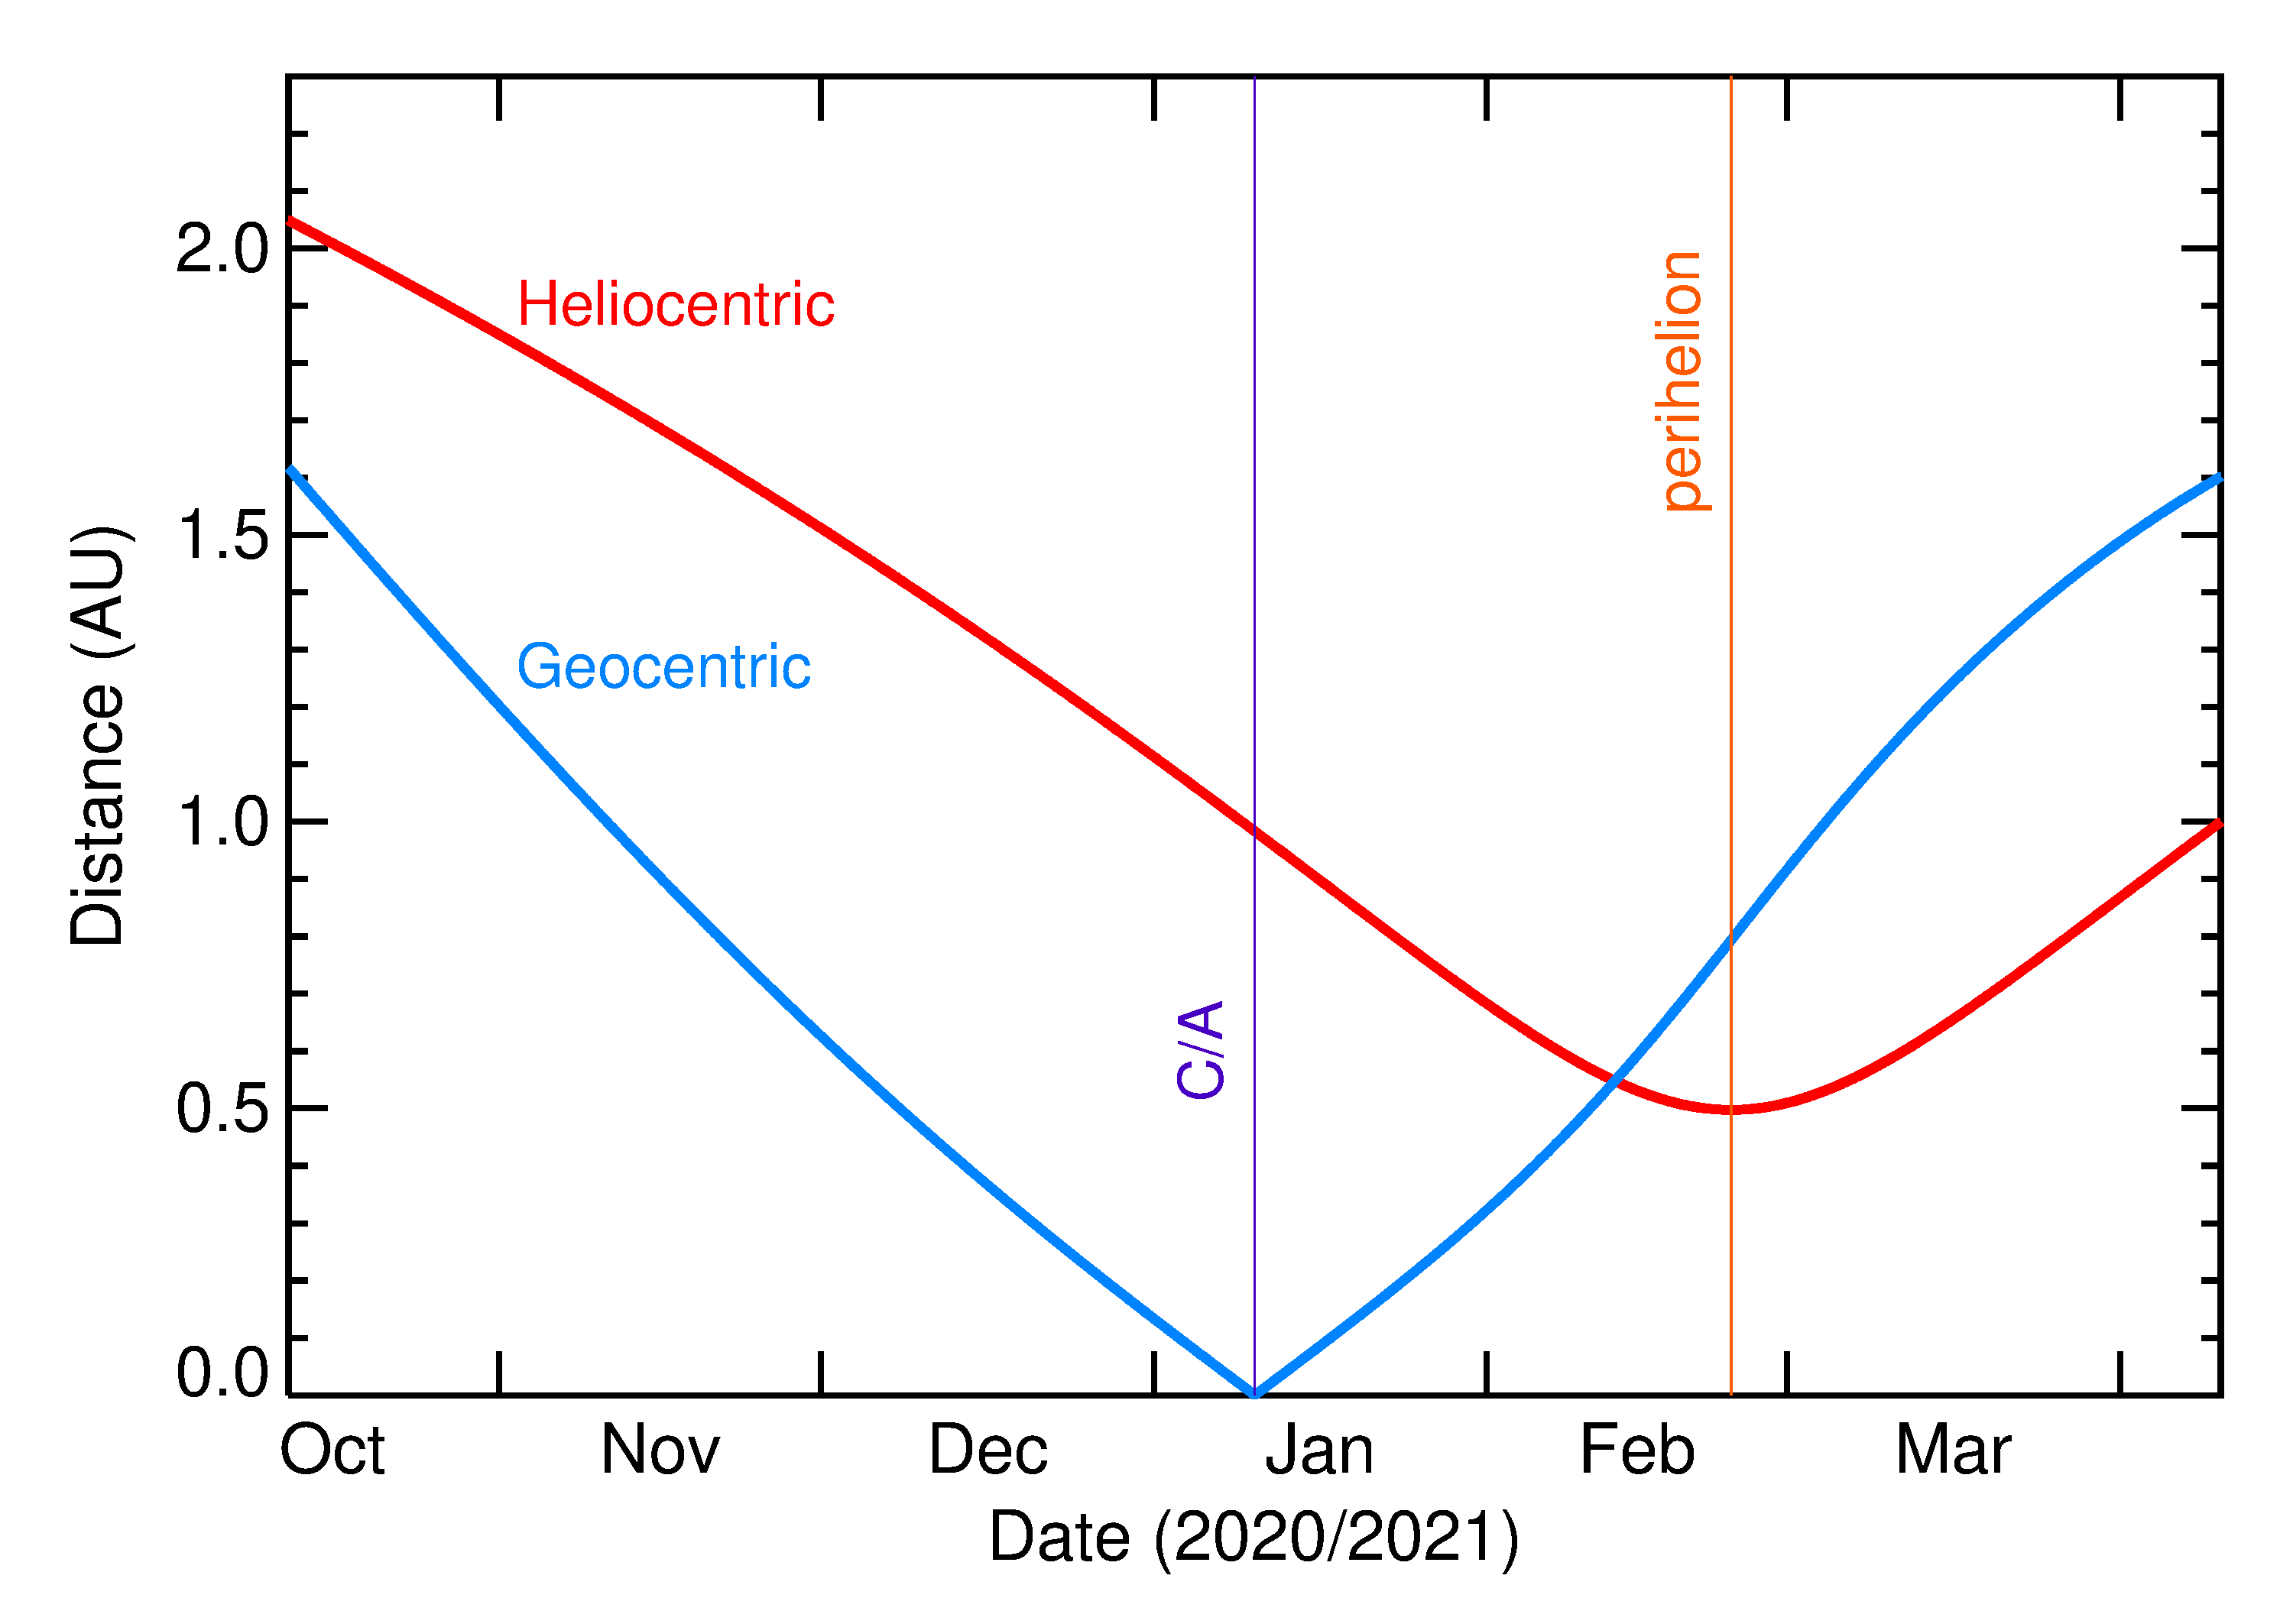 Heliocentric and Geocentric Distances of 2021 AS2 in the months around closest approach